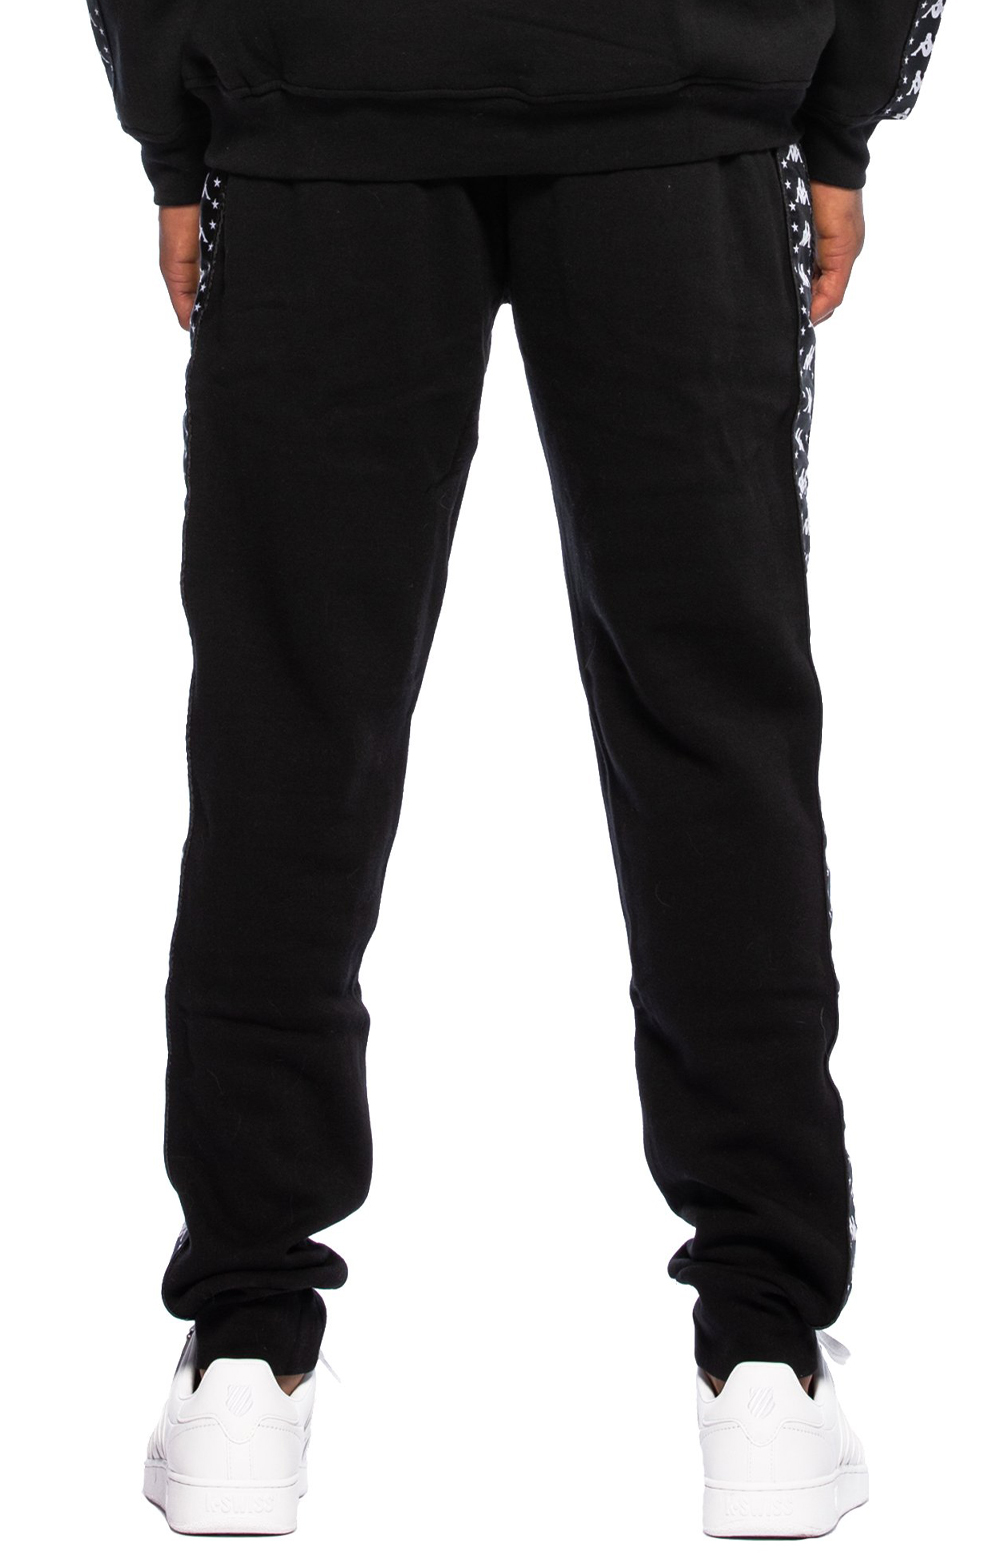 Authentic Amsag Slim Fit Sweatpants - Black/White 3